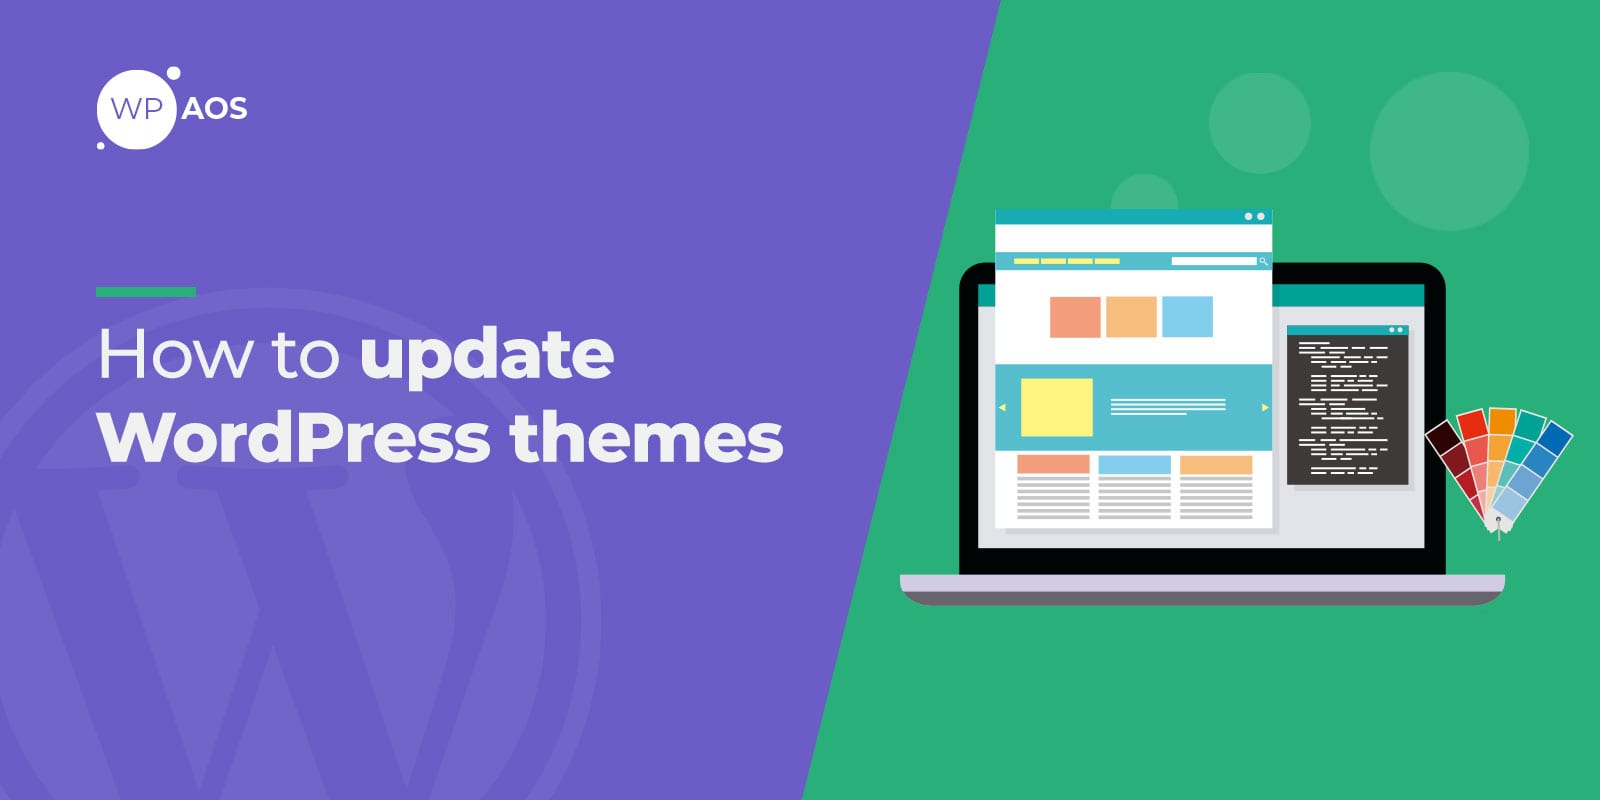 update wordpress themes, woocommerce themes, wpaos